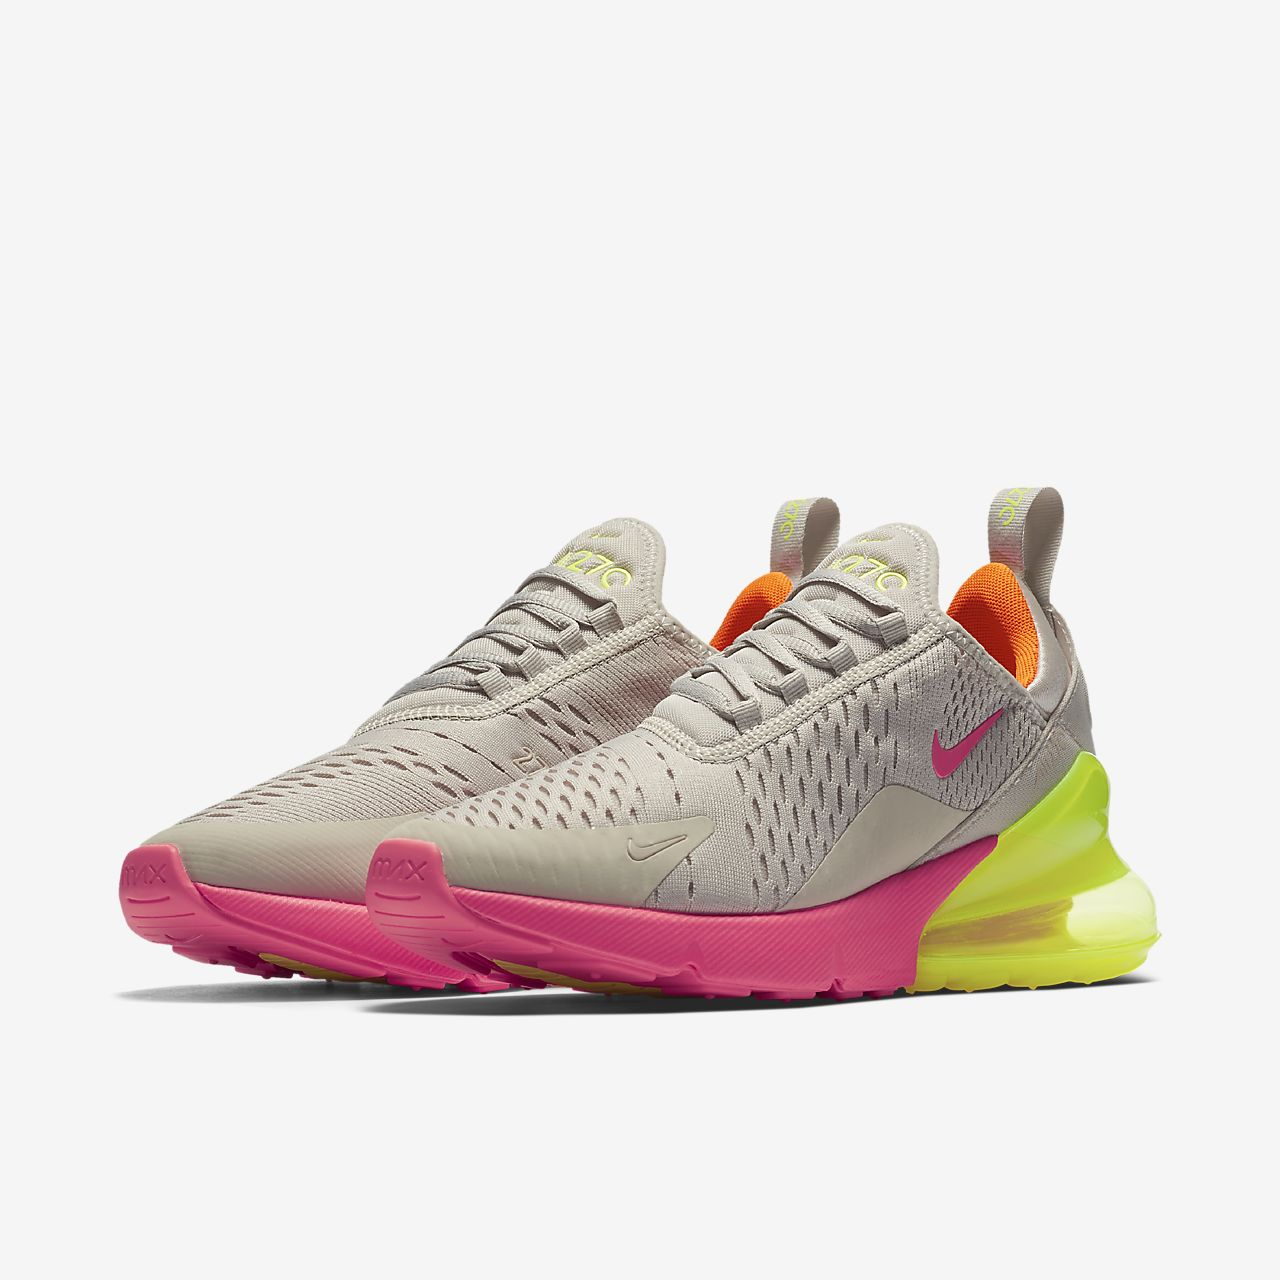 ... Nike Air Max 270 Women's Shoe